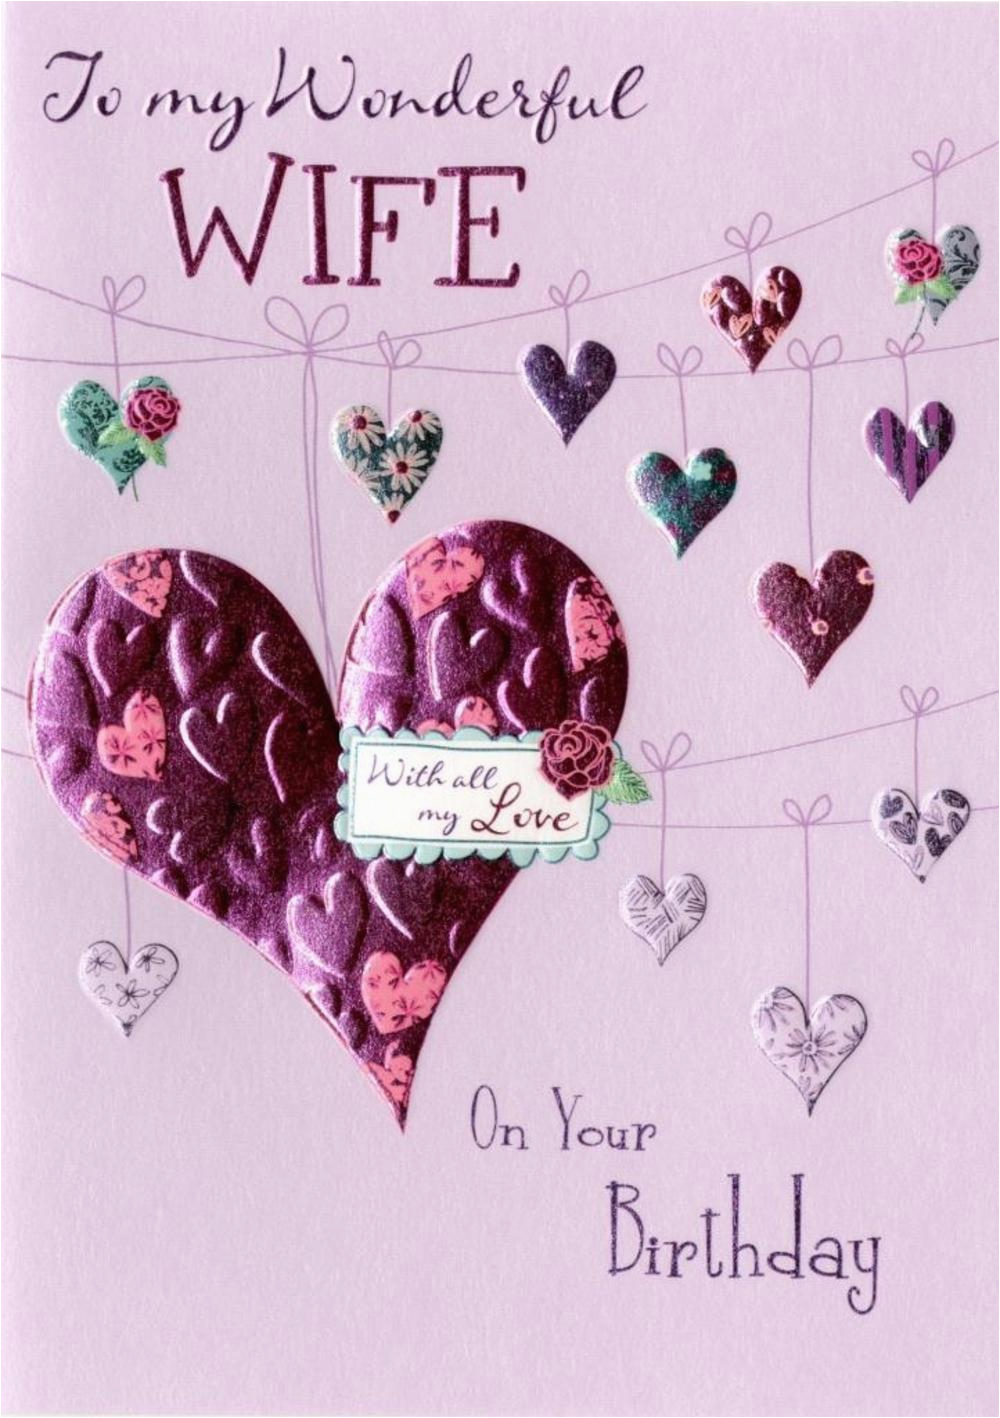 wonderful wife birthday greeting card cards love kates